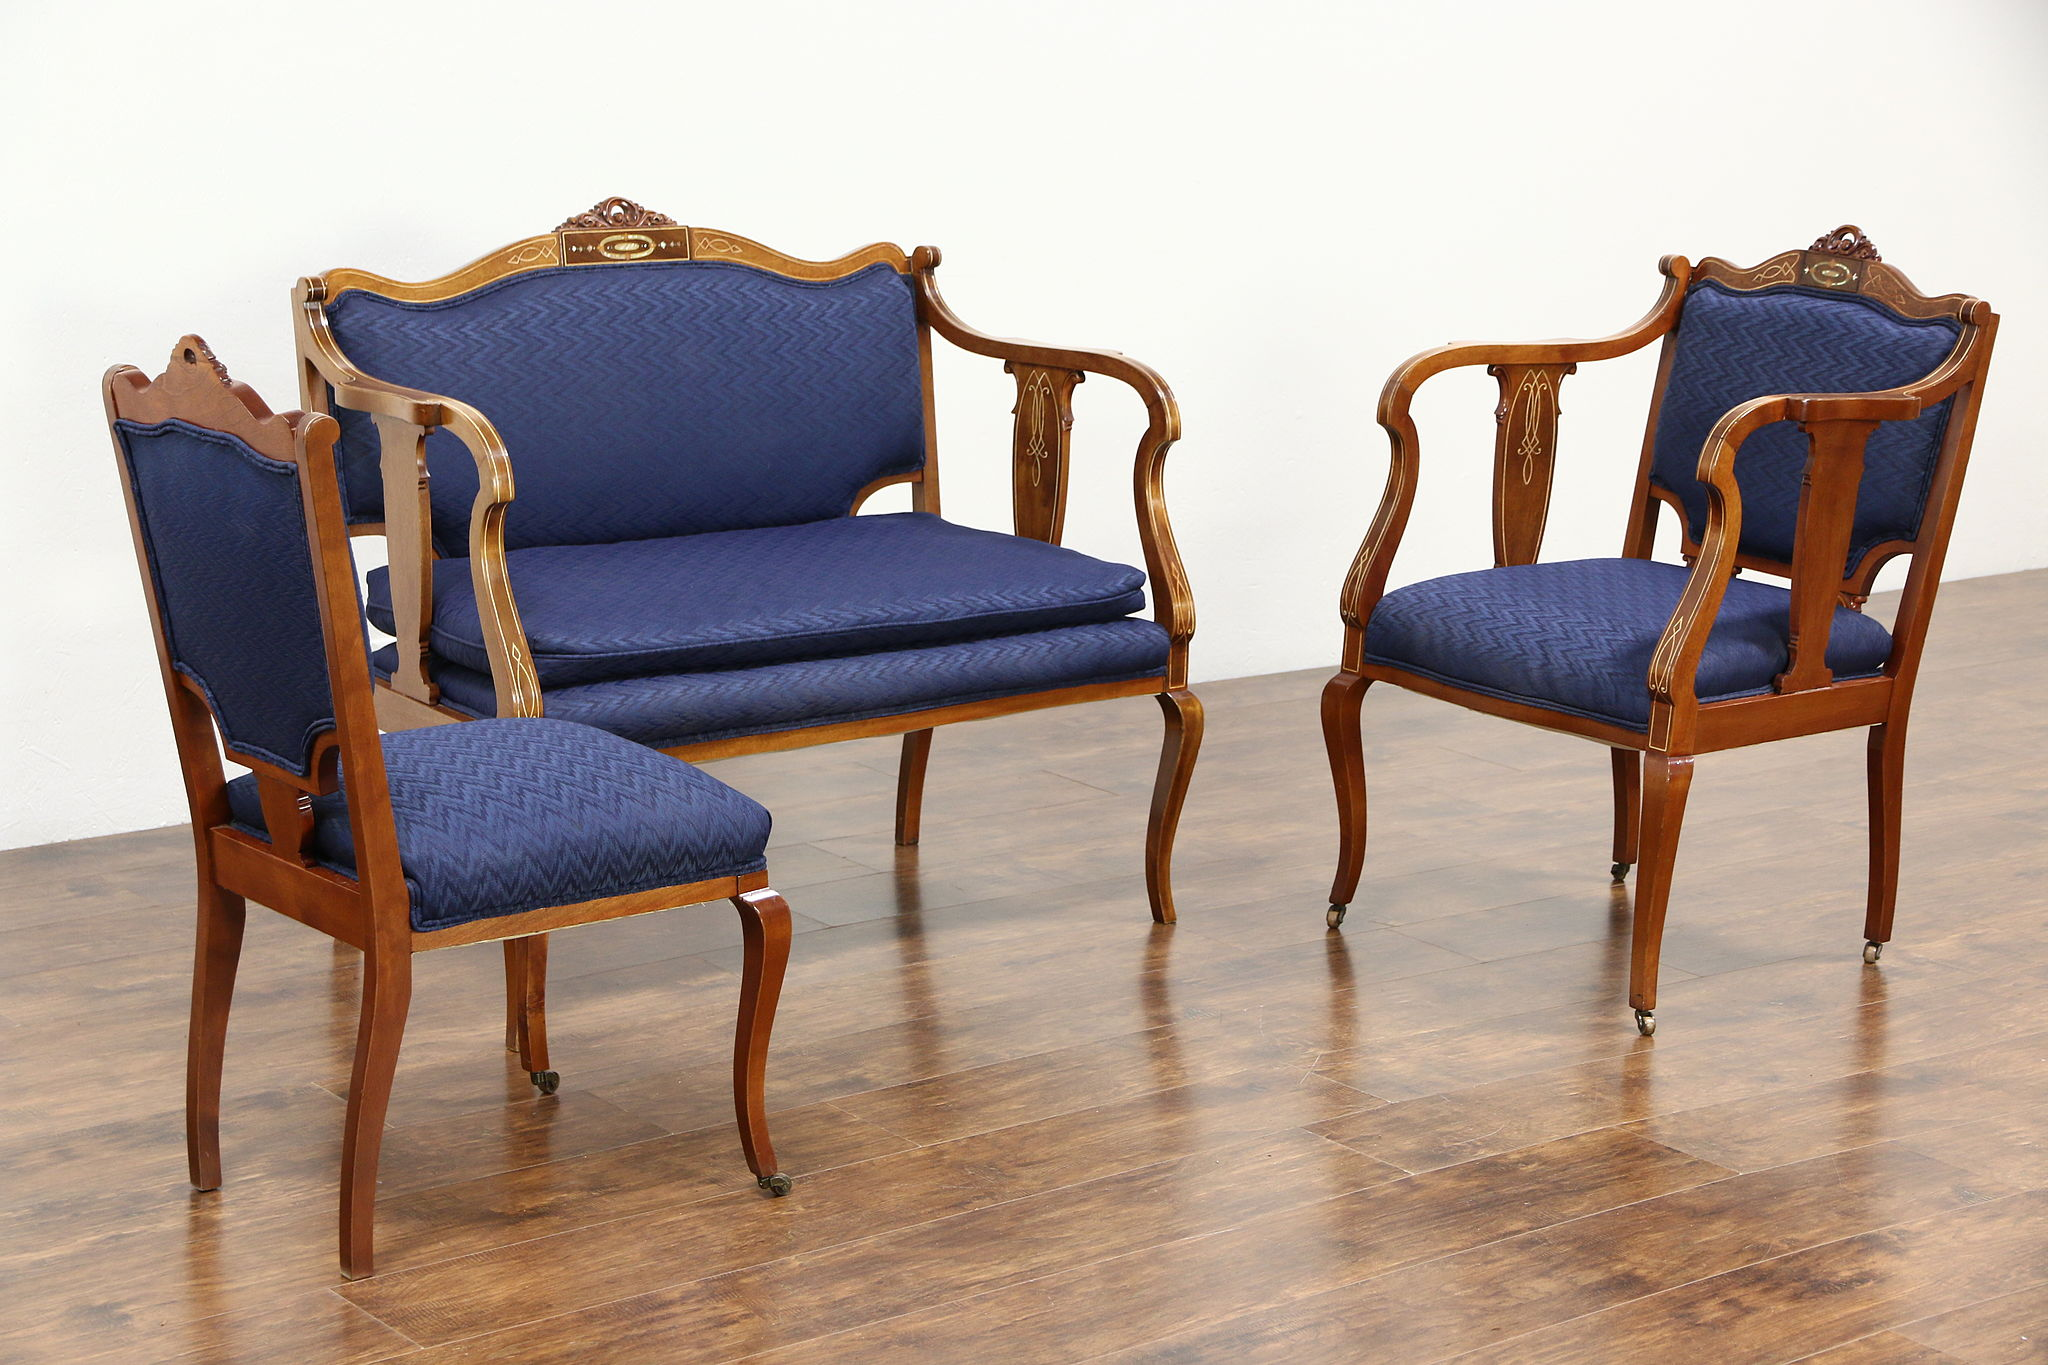 Antique Parlor Chairs Art Nouveau 1910 Antique 3 Pc Parlor Set Loveseat 2 Chairs Pearl Inlay